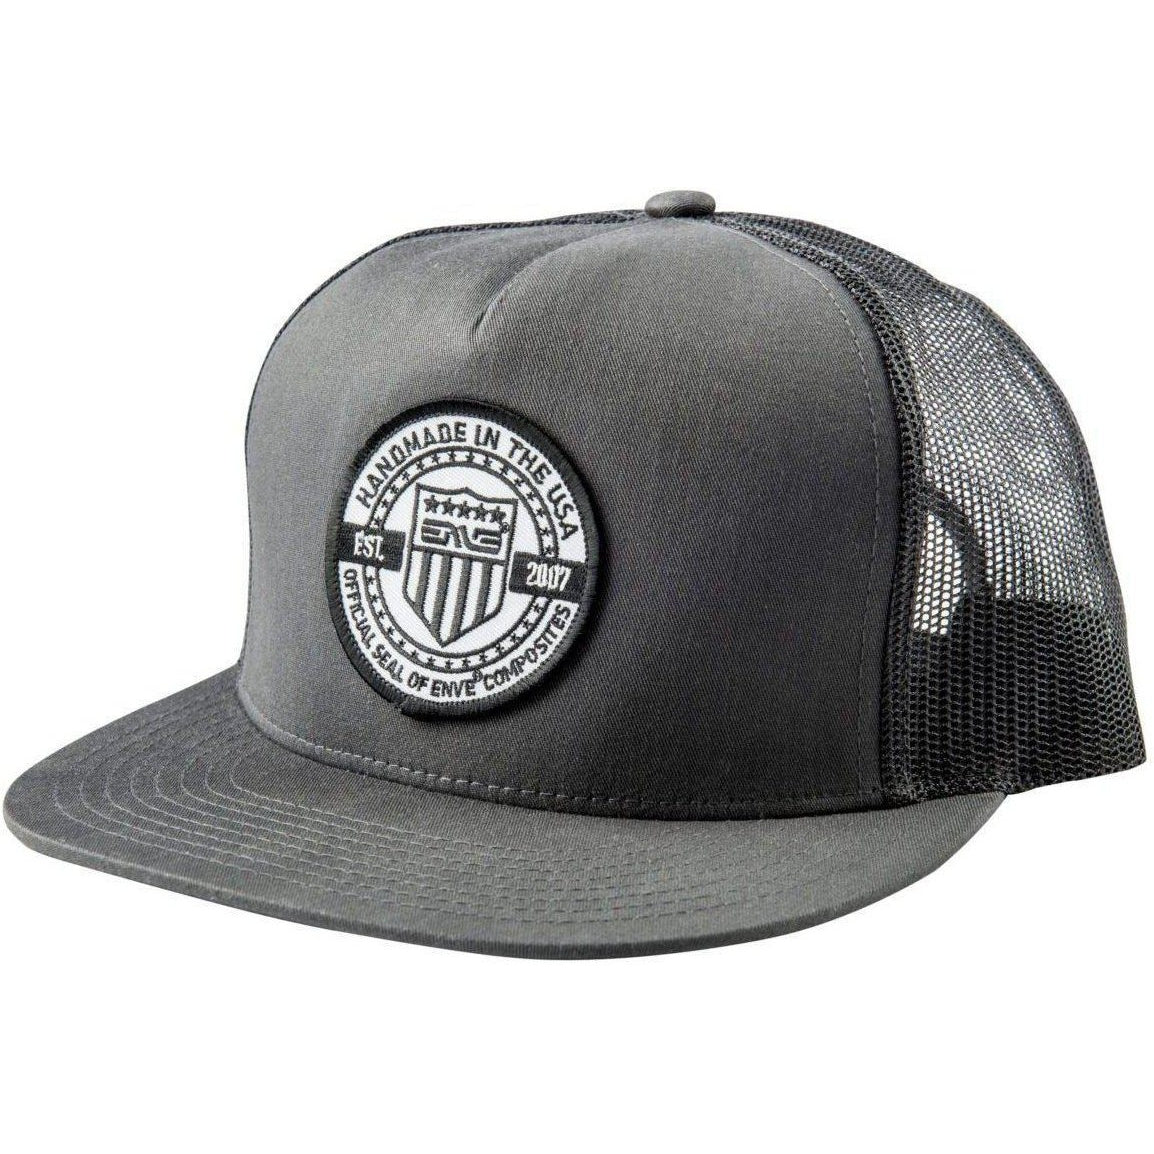 ENVE-ENVE Seal Trucker Hat-Charcoal-Uni-EN77001301-saddleback-elite-performance-cycling